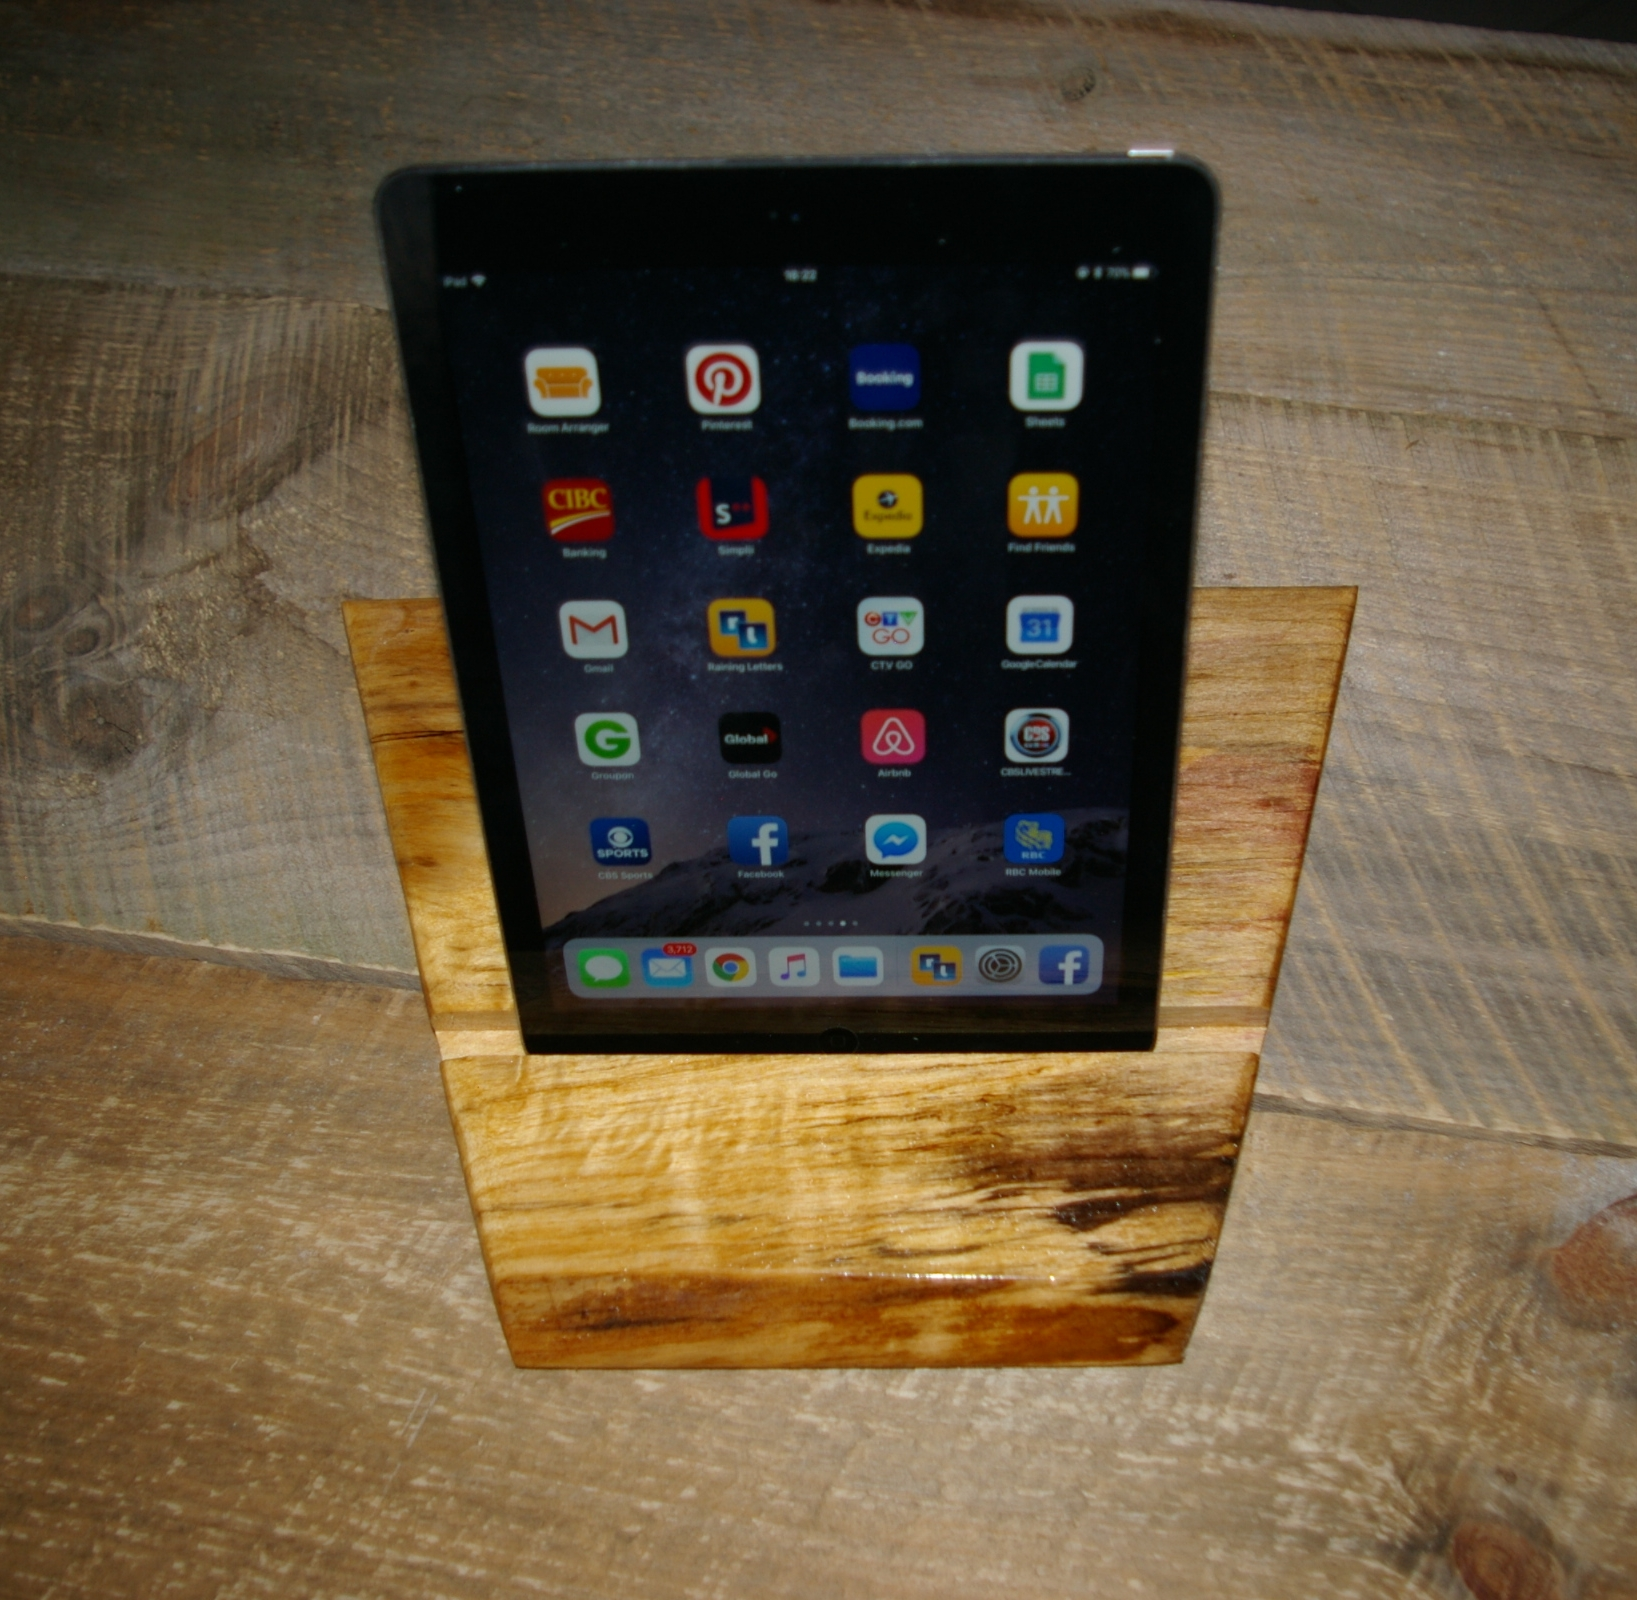 iPad desk top holder$25 - #504 Live edge poplar wood with gloss finishcan be used for both ipad or cell phone vertical or horizontal position, will fit ipads or cell phone without cover.Custom orders at no additional charge available for a wider groove to accomadate covers.size 9x12x 7/8